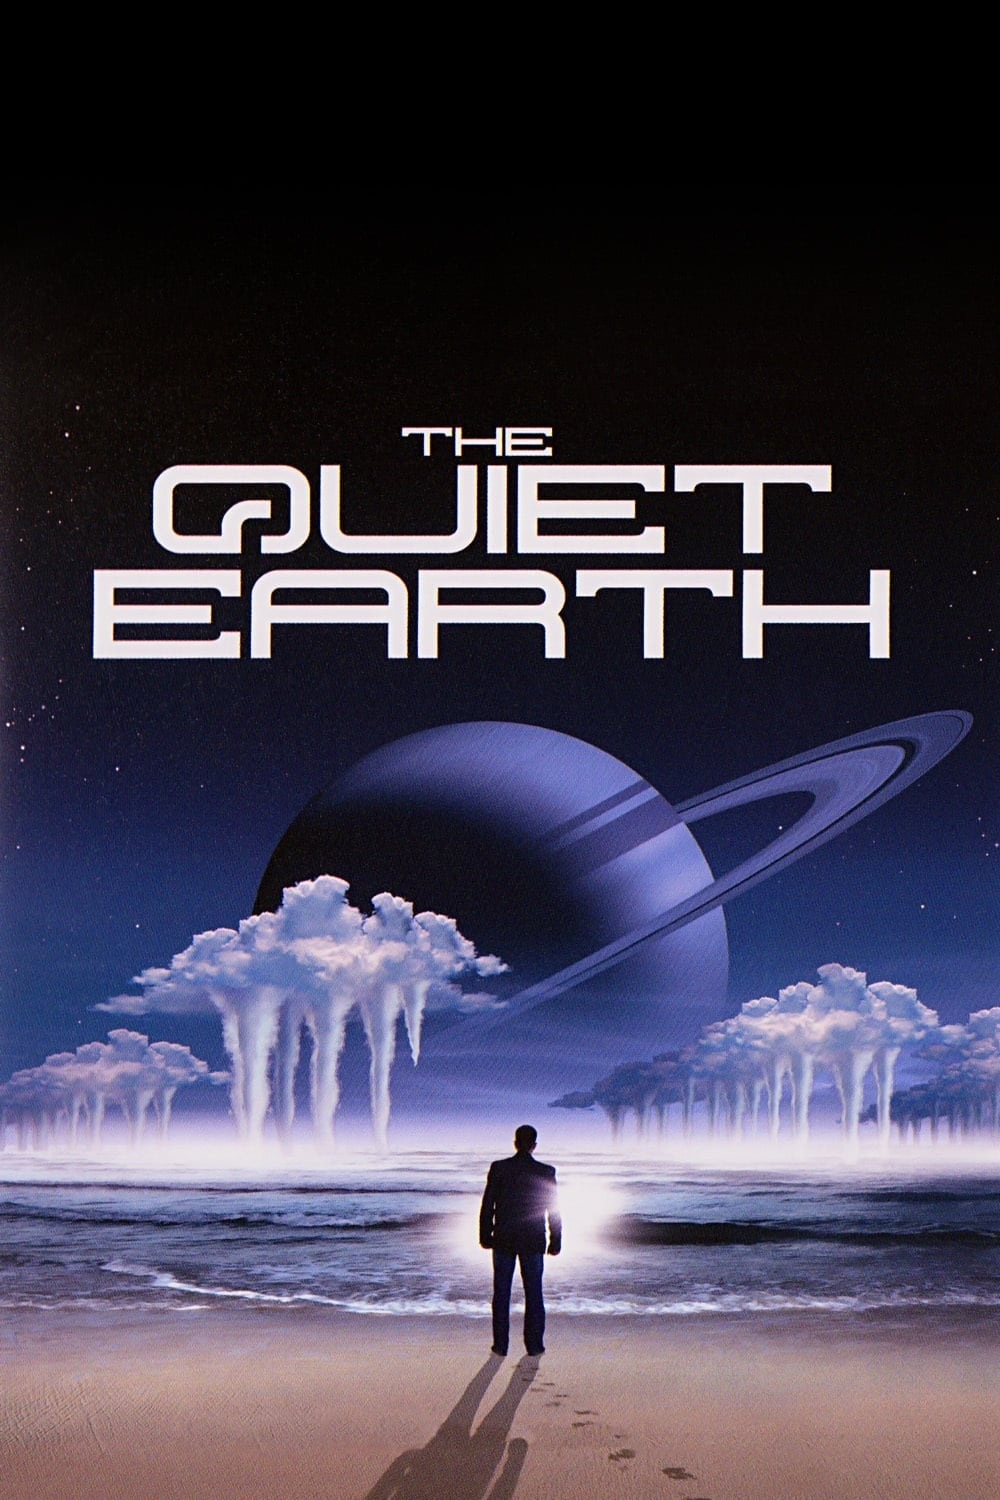 Poster for THE QUIET EARTH